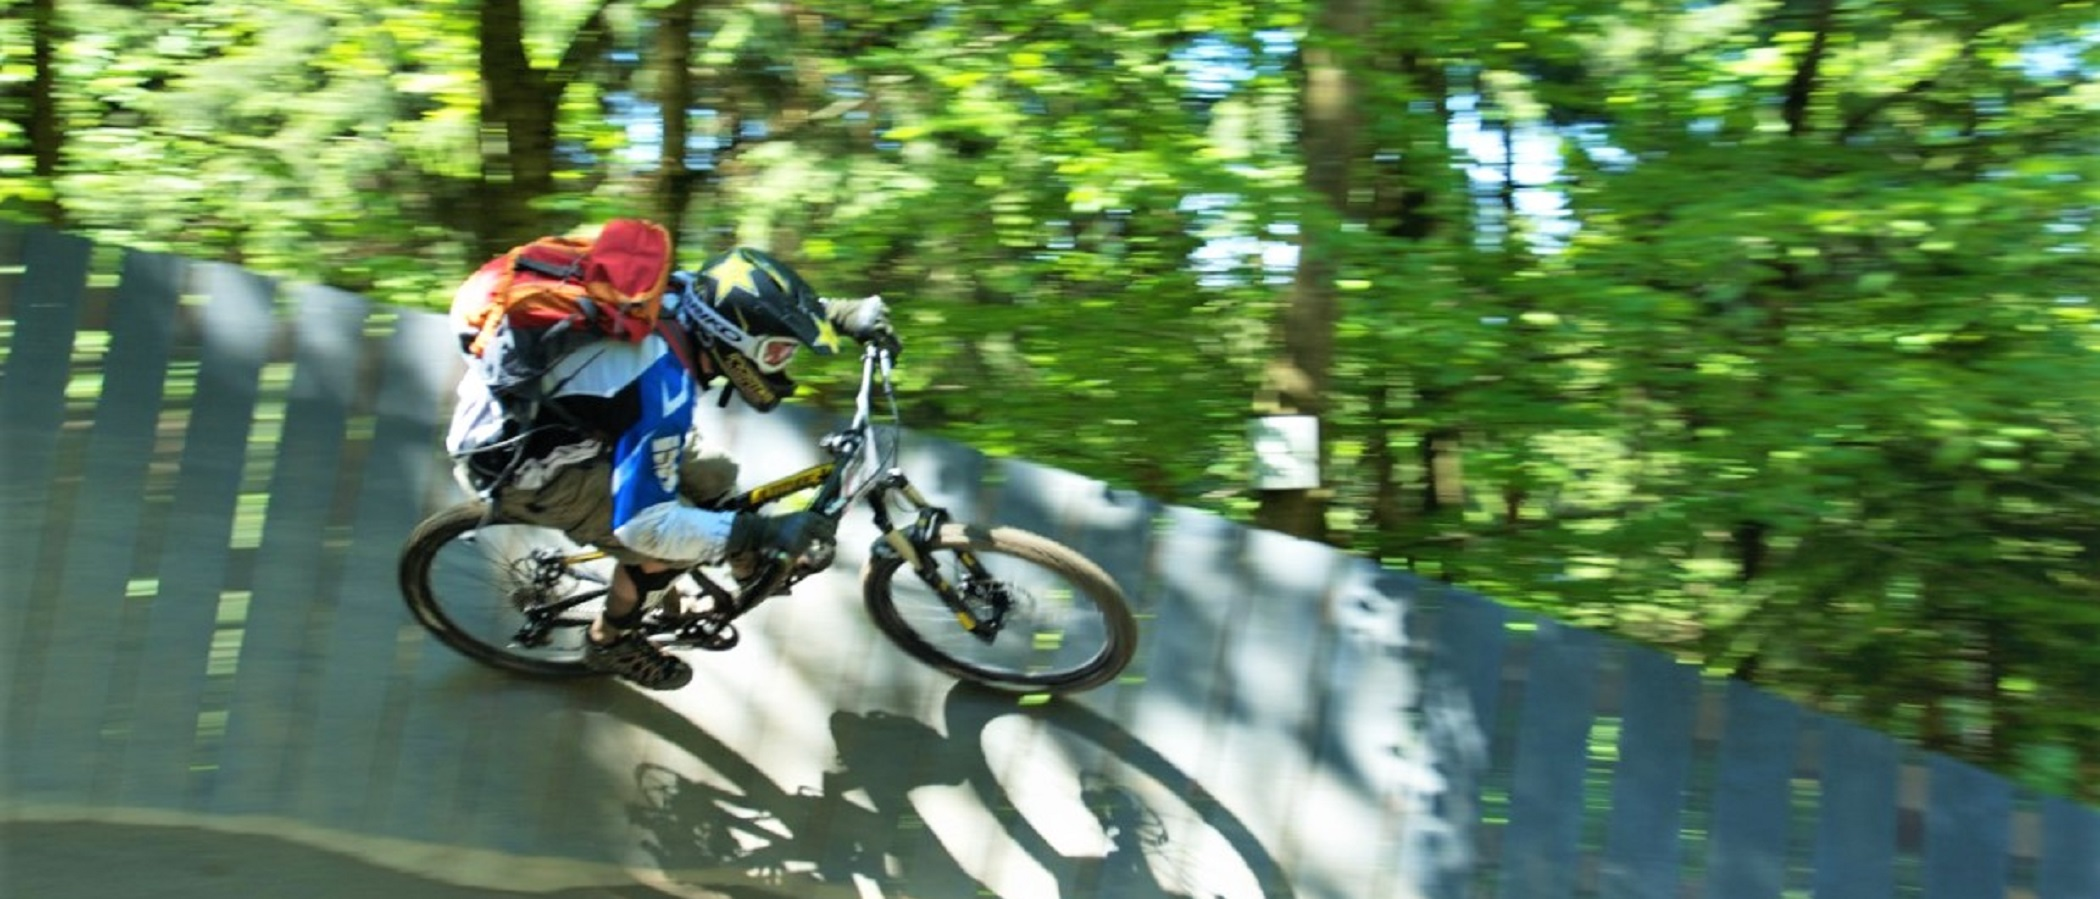 Mountainbiken Downhill.jpg